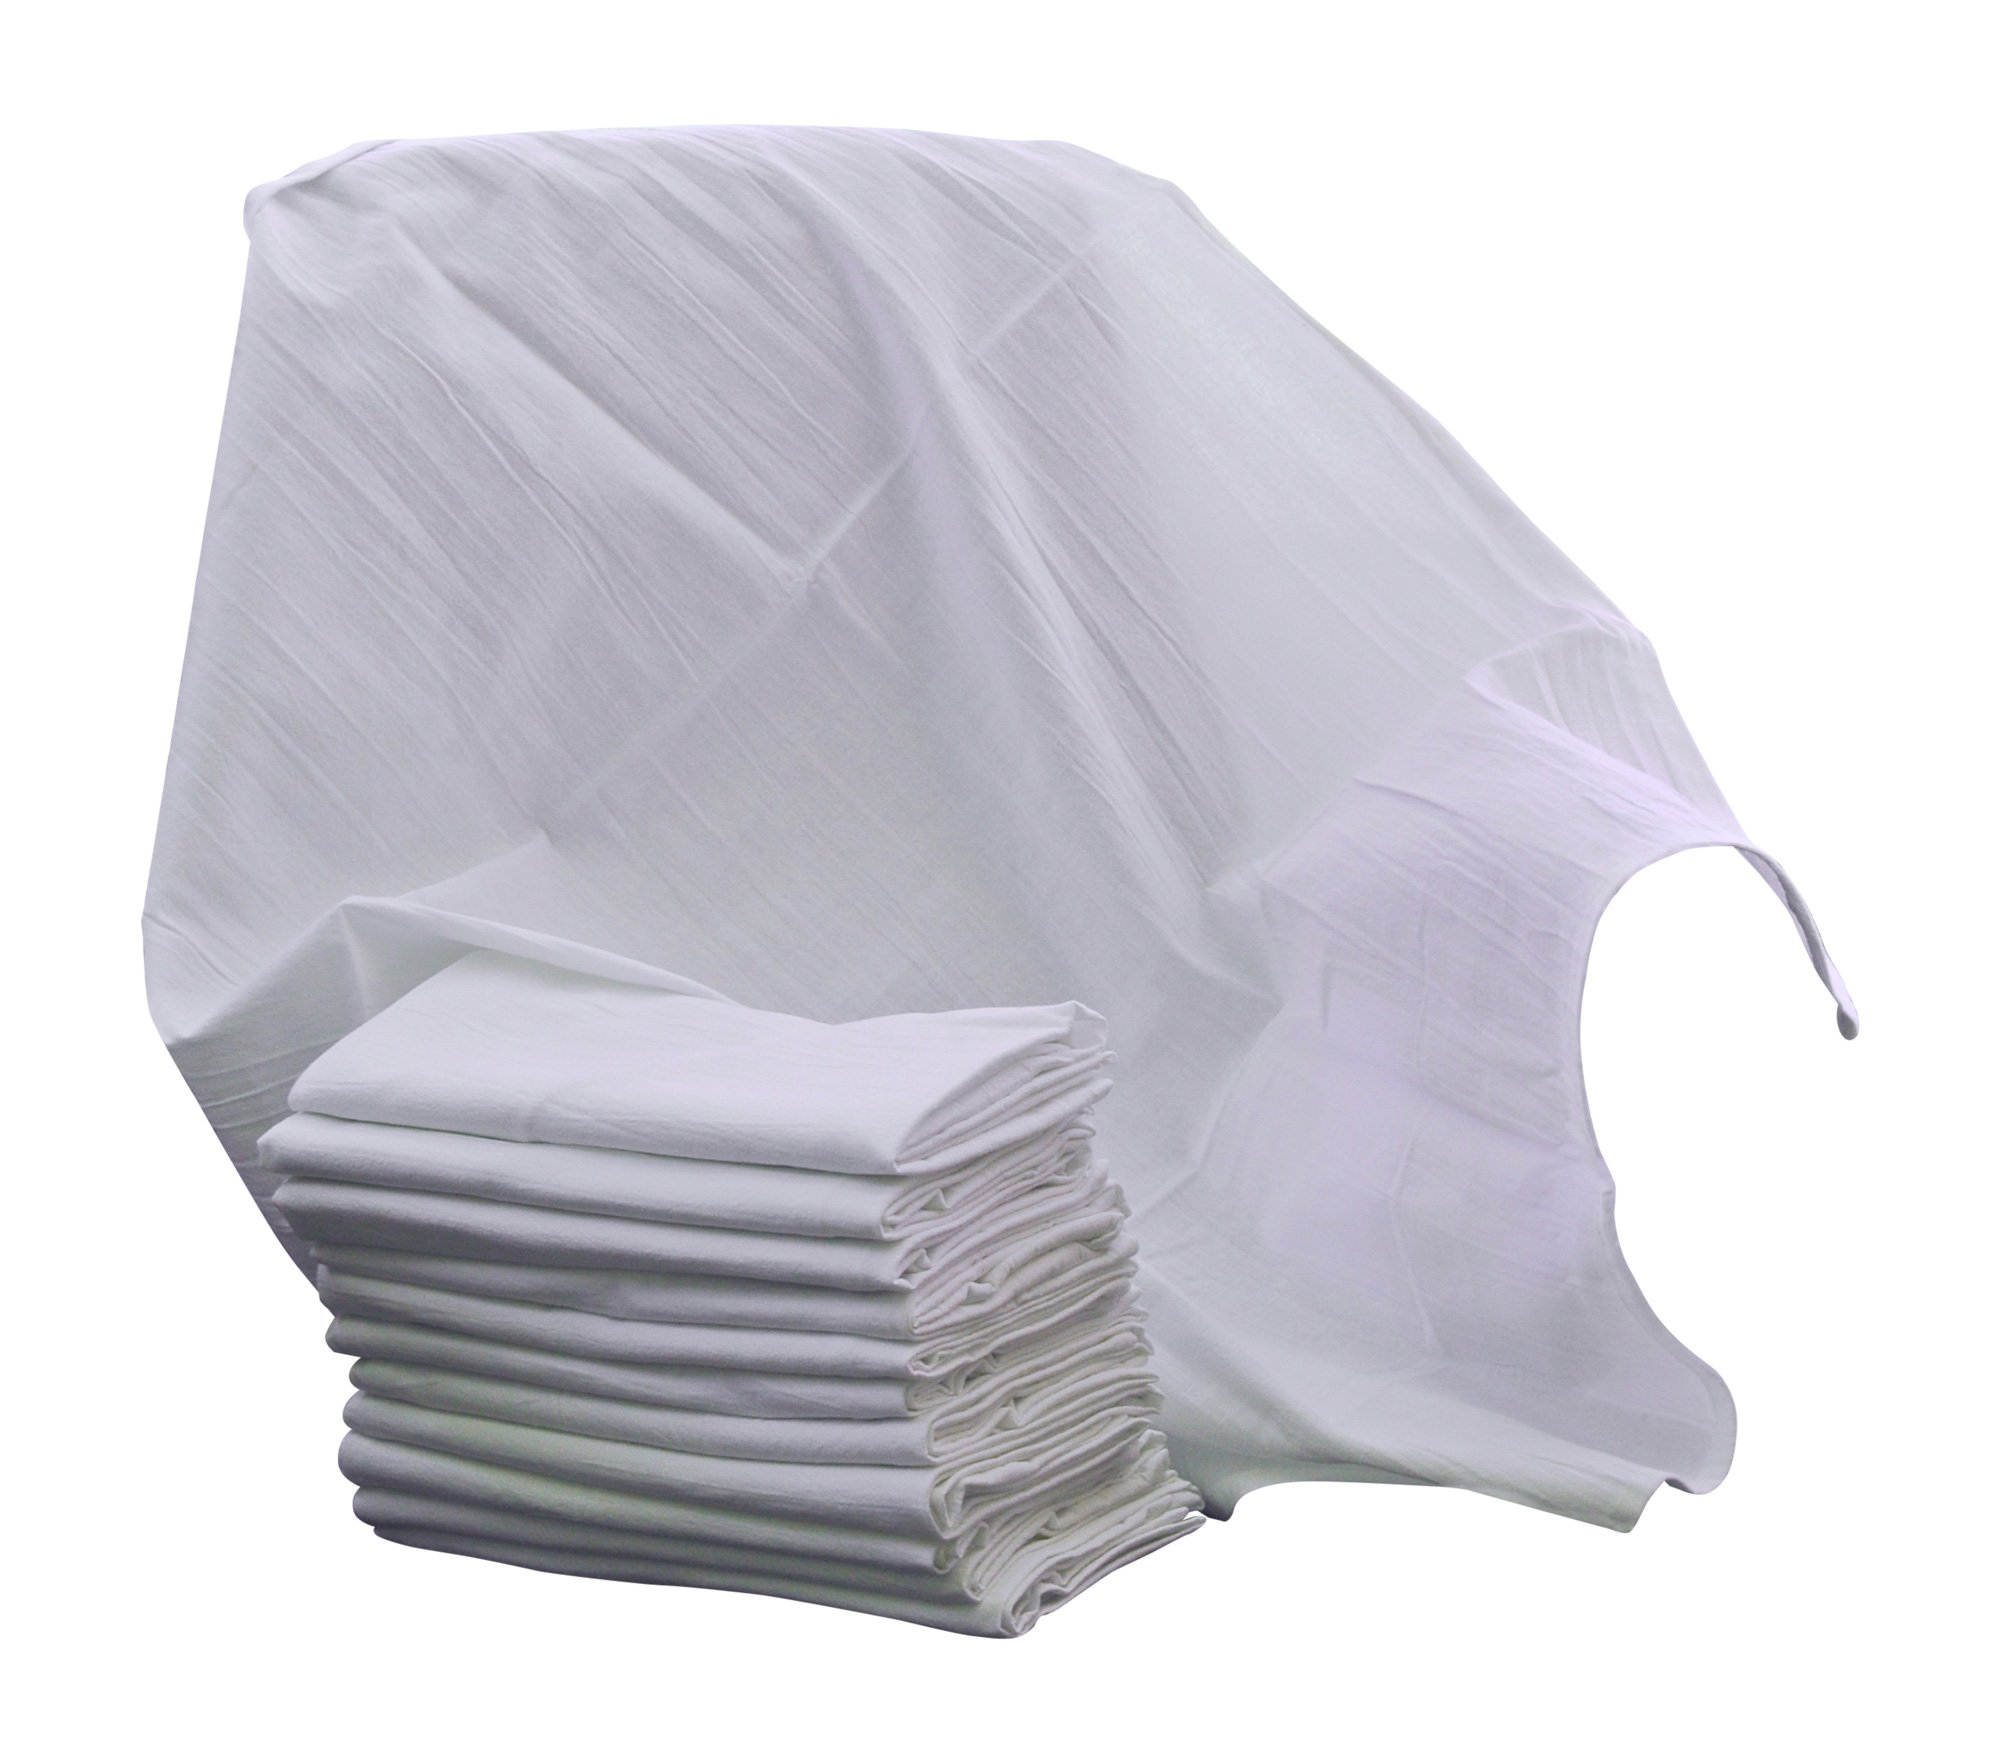 Best Rated in Dish Cloths & Dish Towels & Helpful Customer